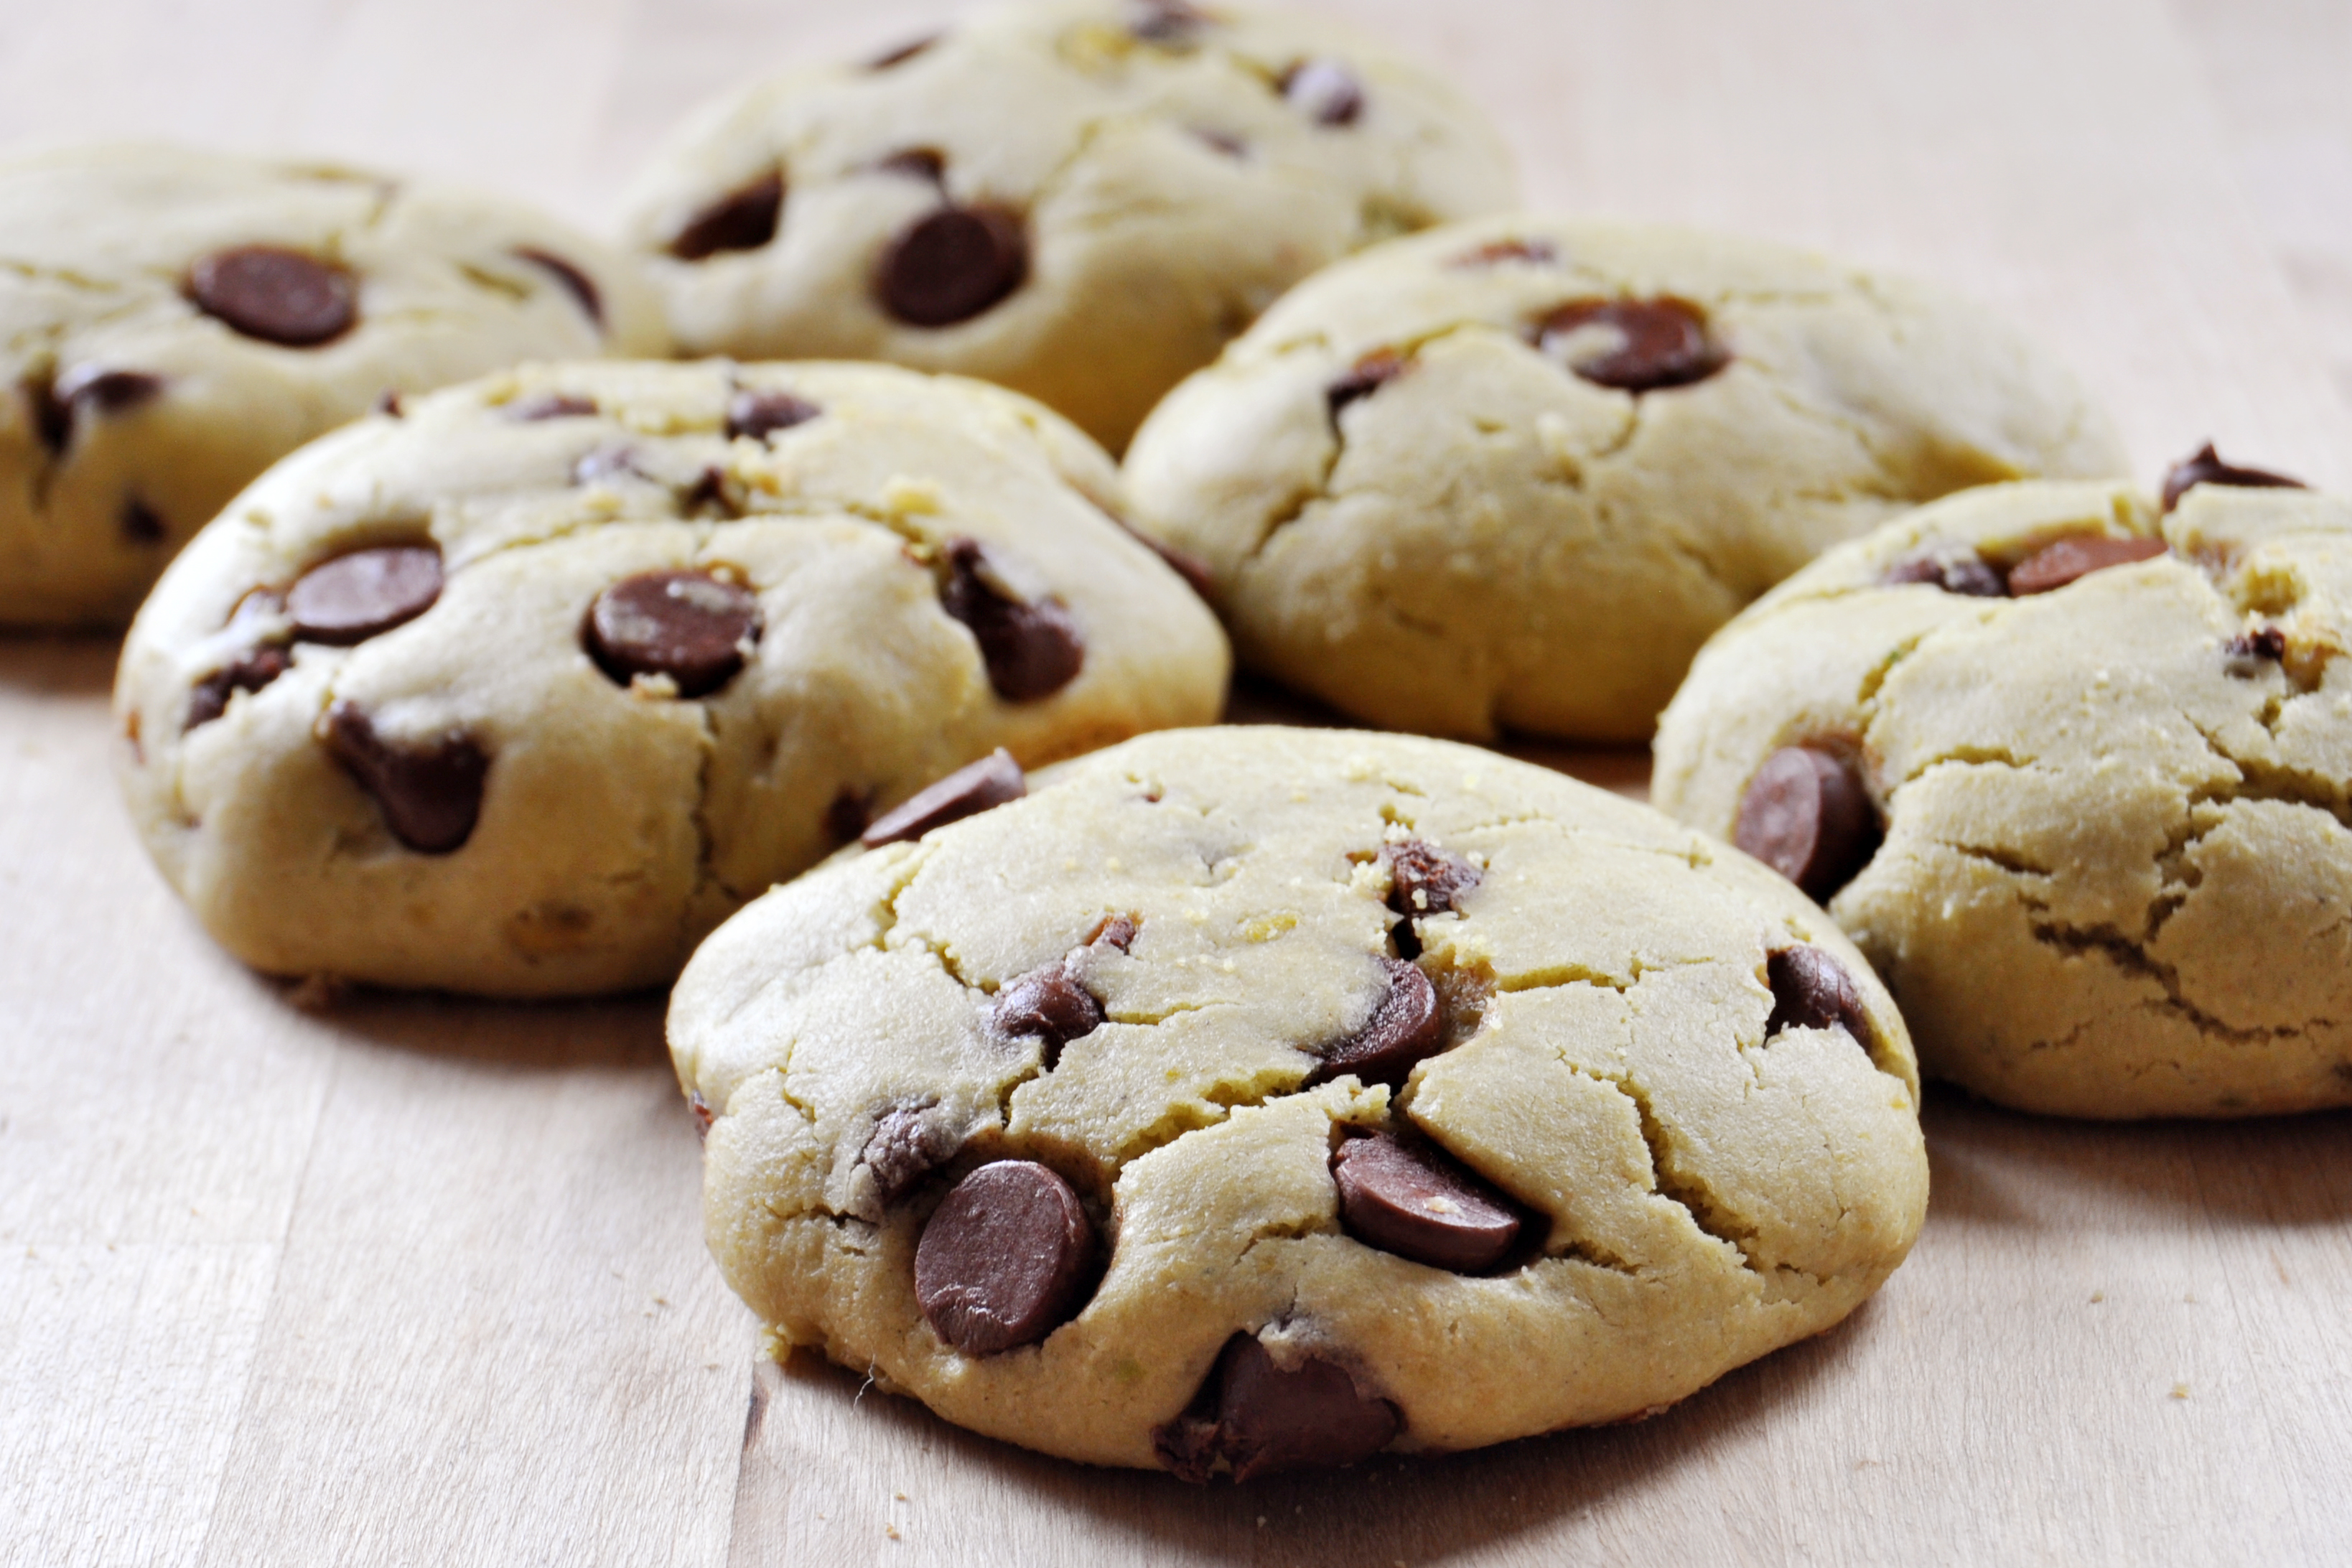 Vegan Avocado Chocolate Chip Cookies - The Colorful Kitchen